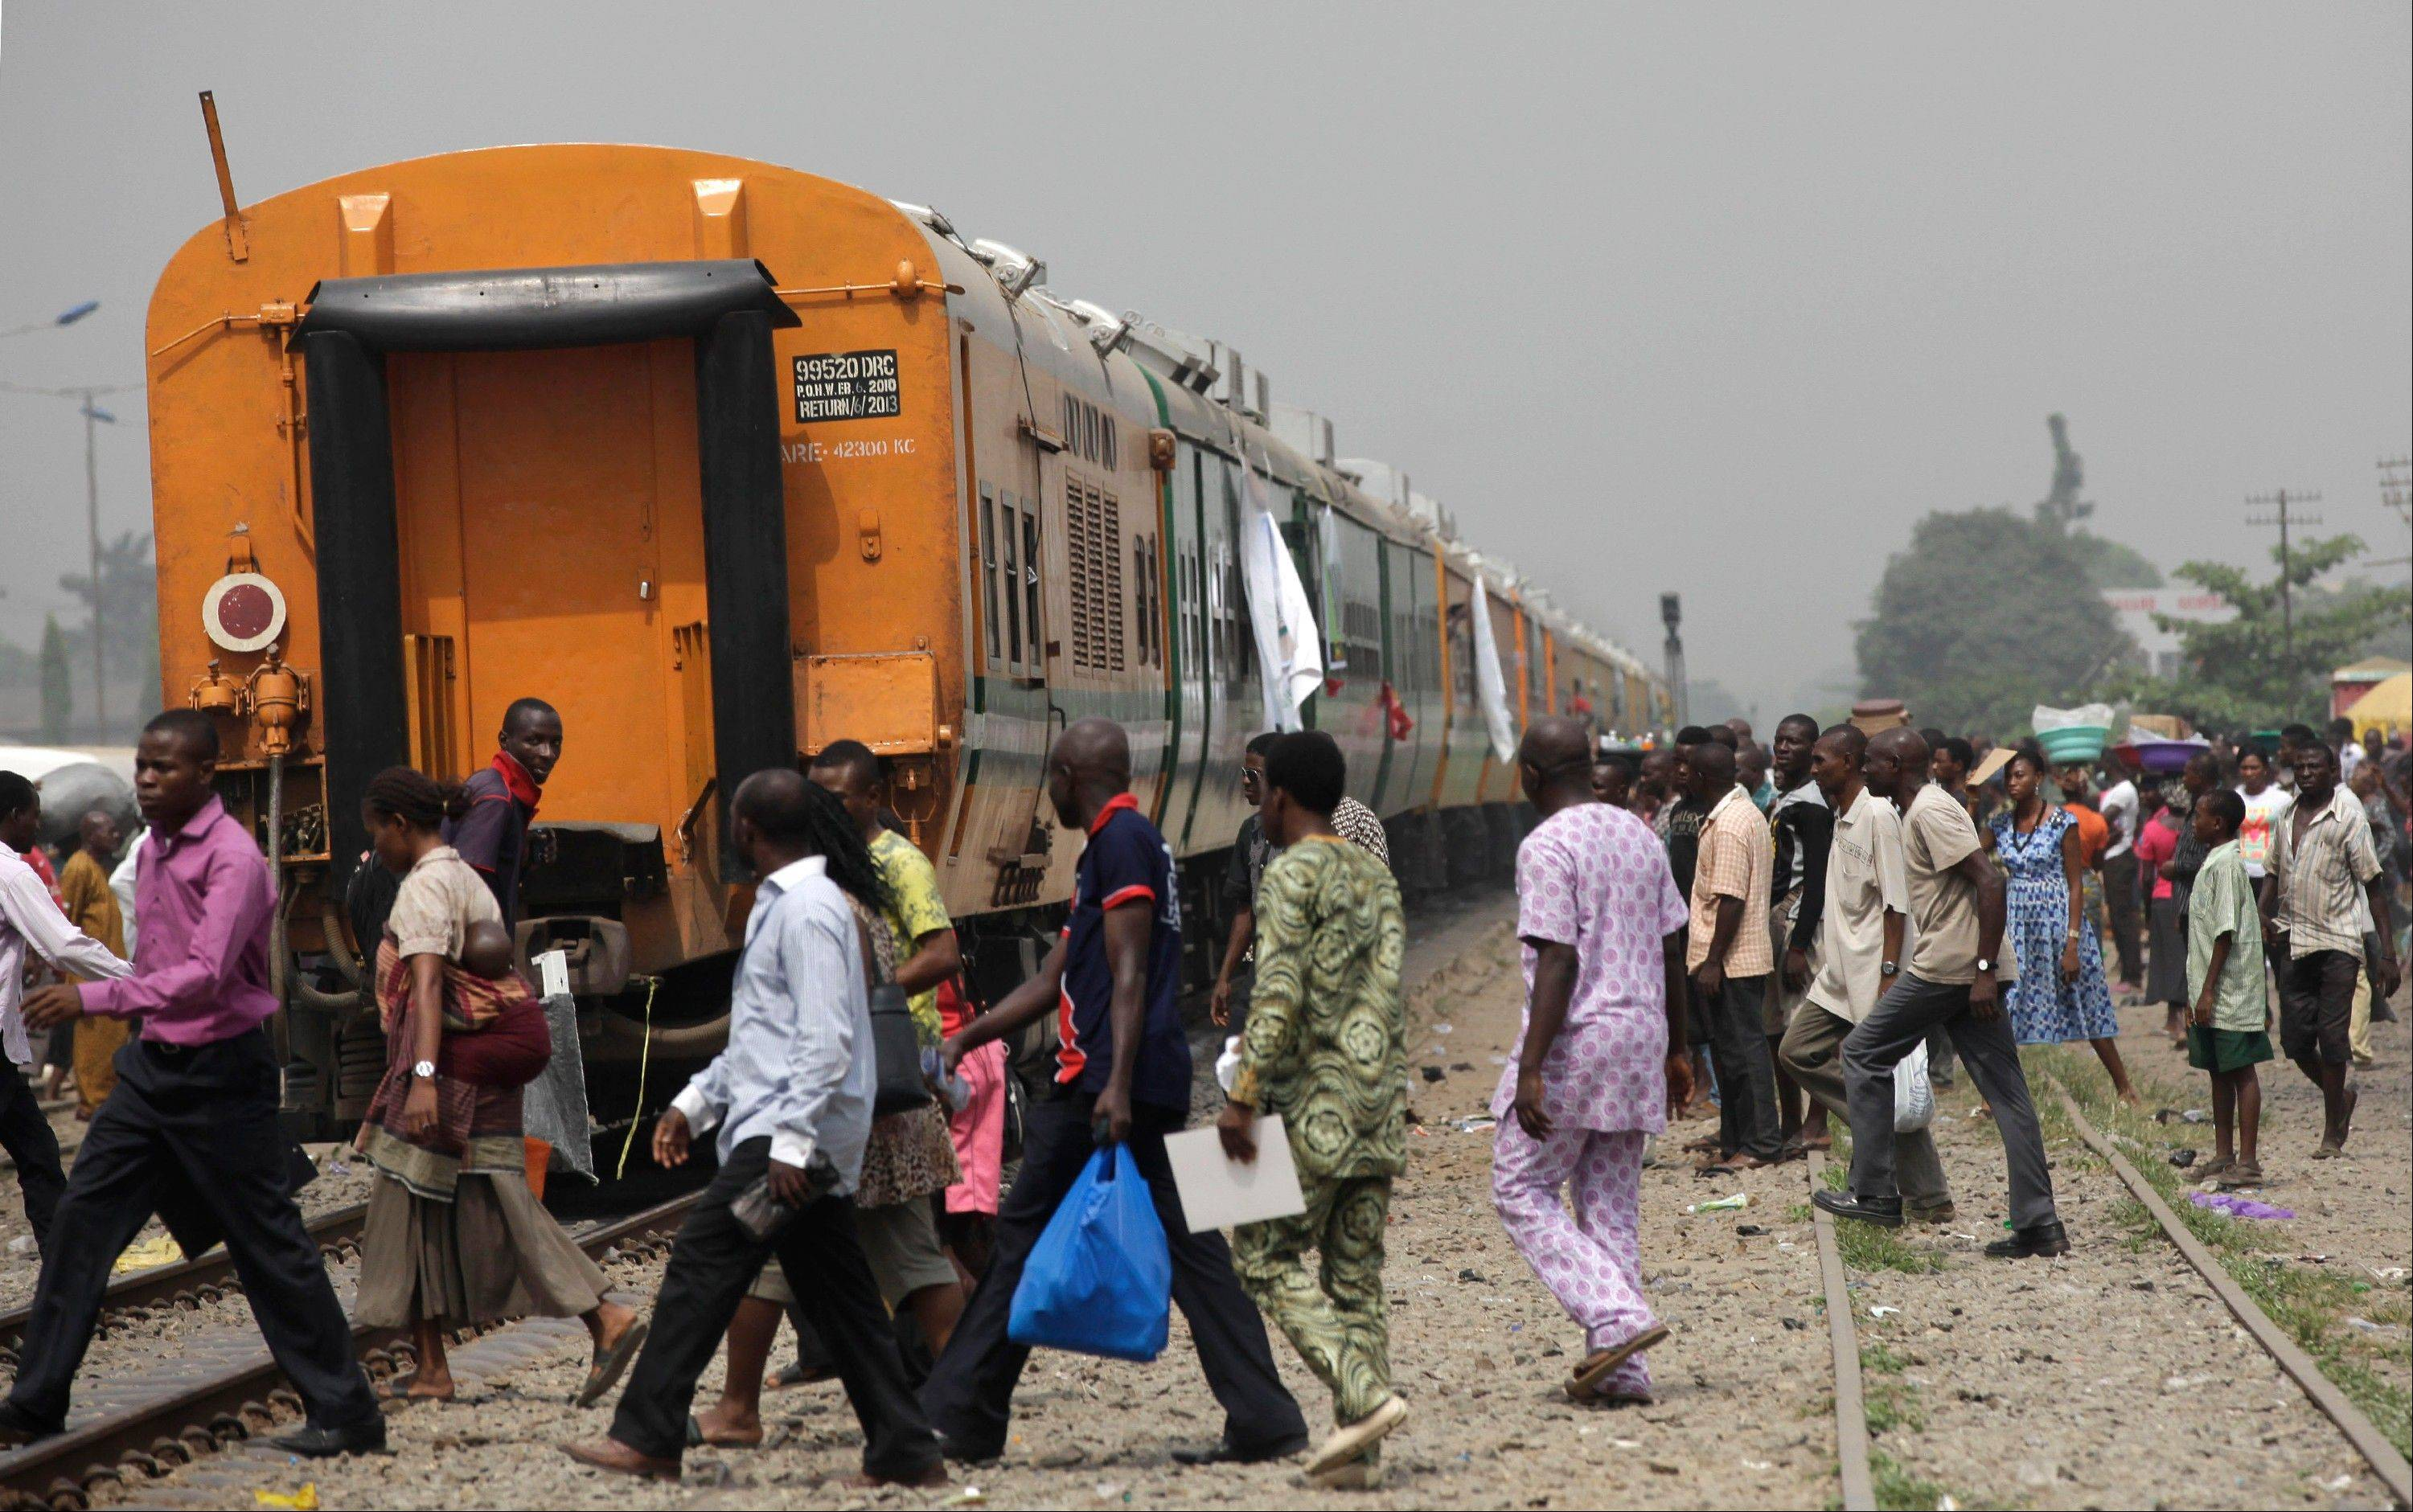 People cross the tracks Friday as they wait for the train to move off as part of a newly inaugurated train service to Kano, Nigeria, in Lagos, Nigeria.